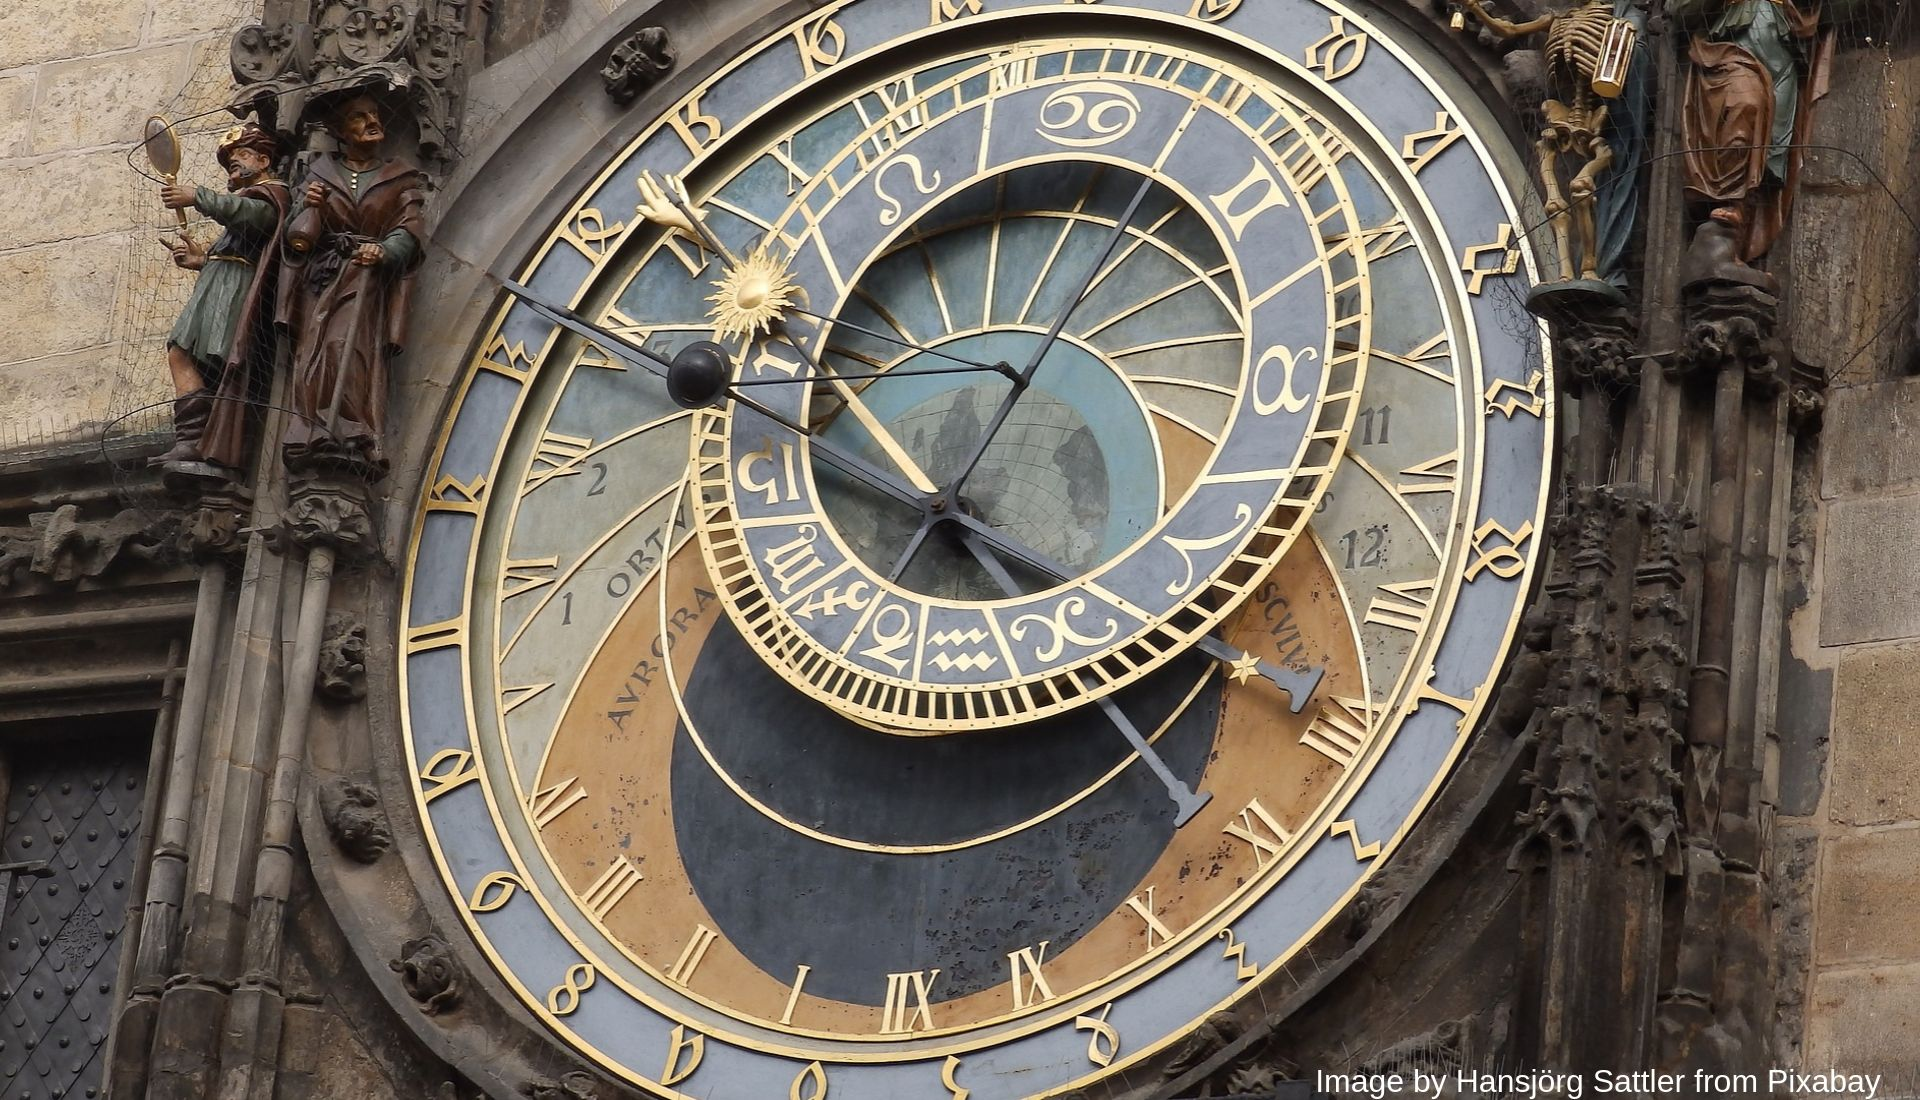 The famous astronomical clock face